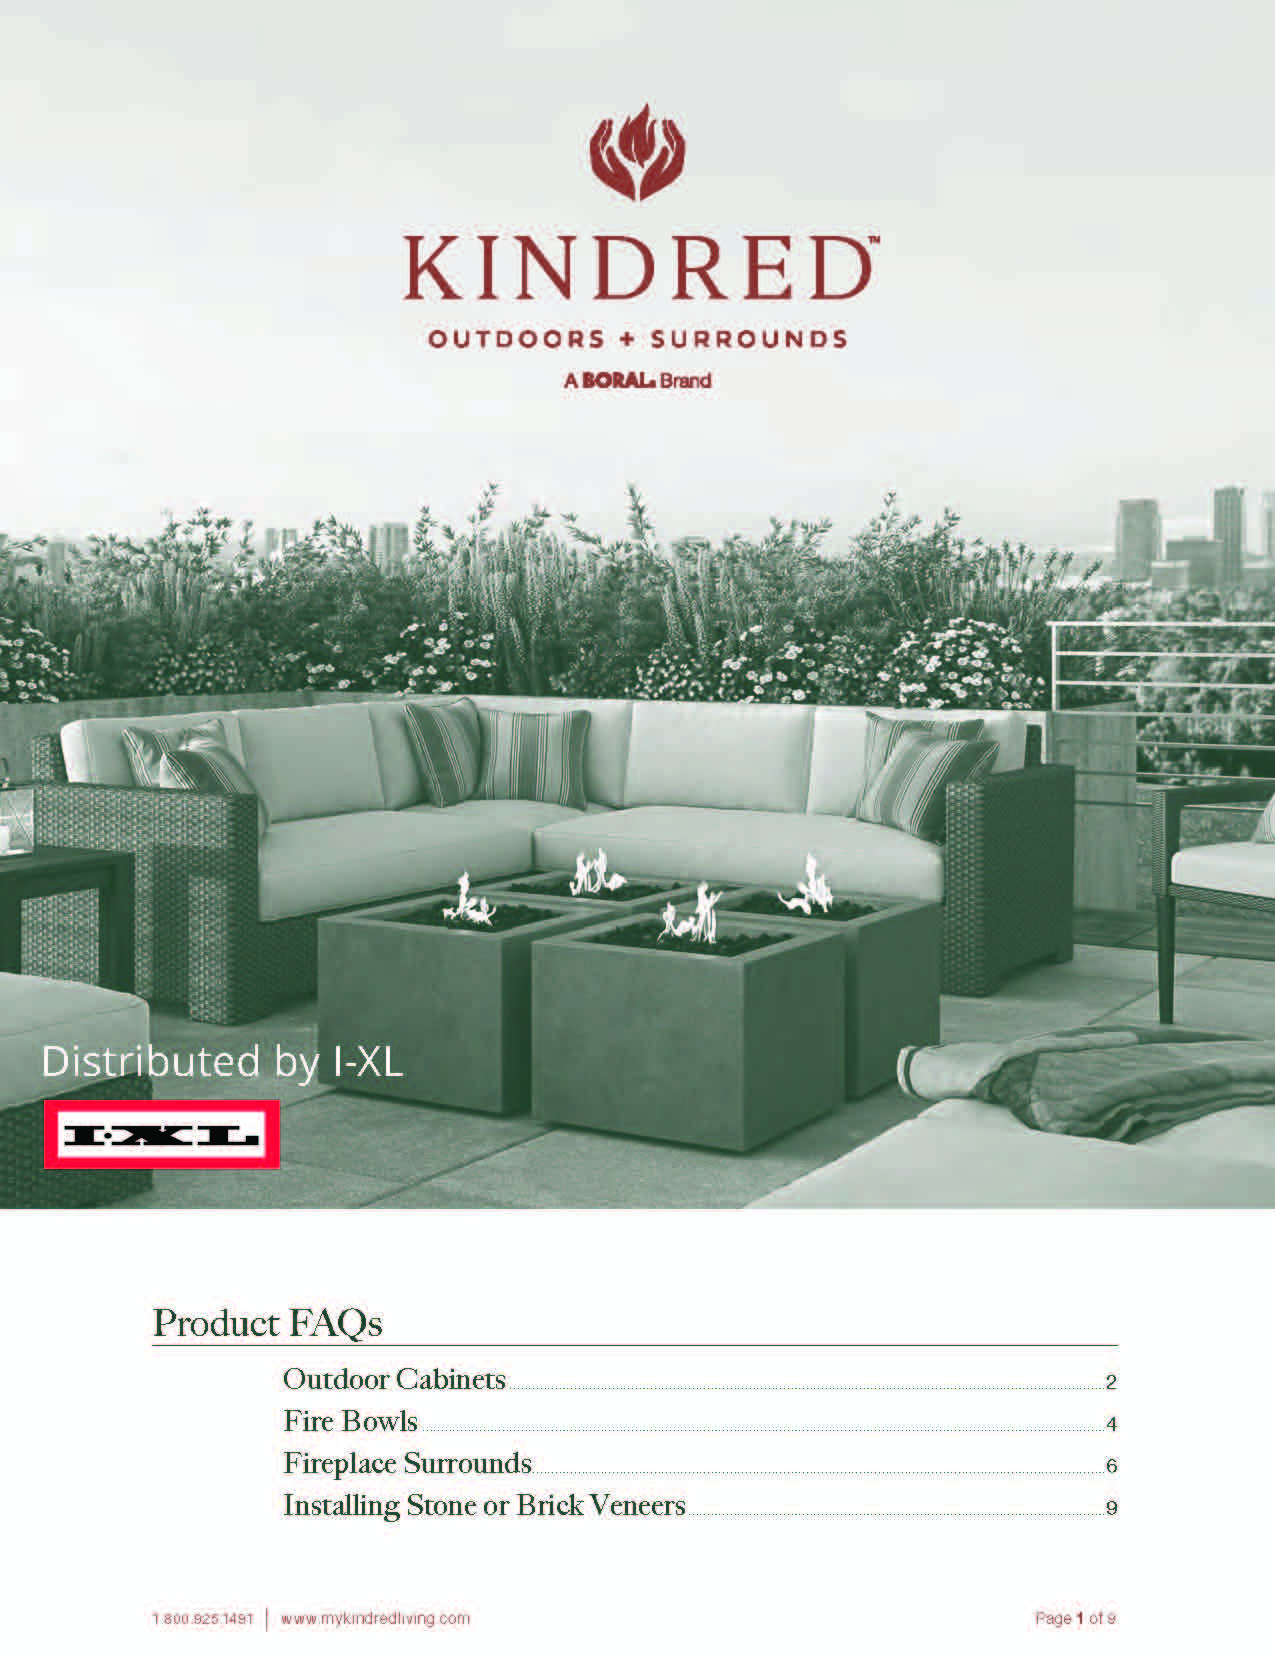 Kindred Outdoor & Surrounds Product FAQs